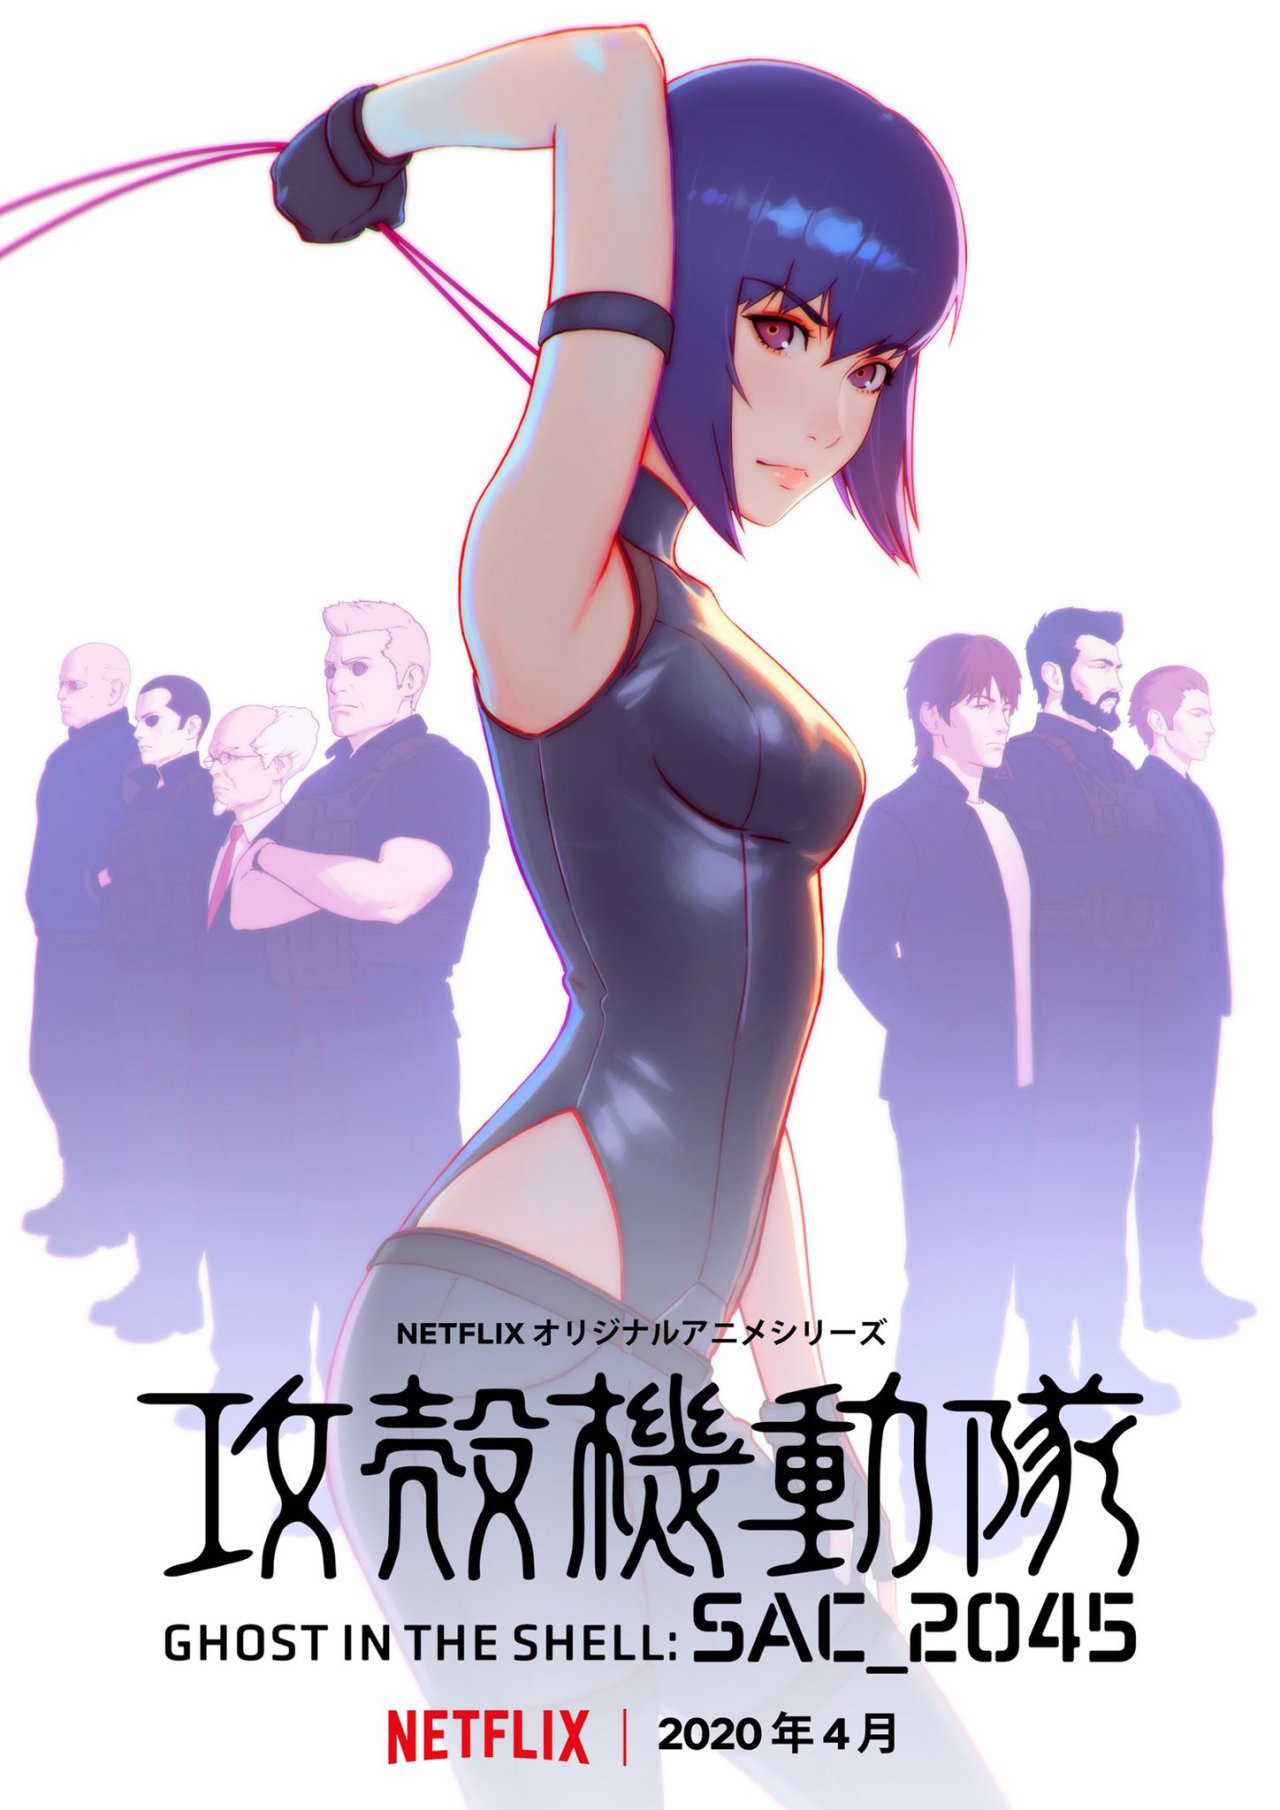 Imagem promocional de Ghost in the Shell: SAC_2045